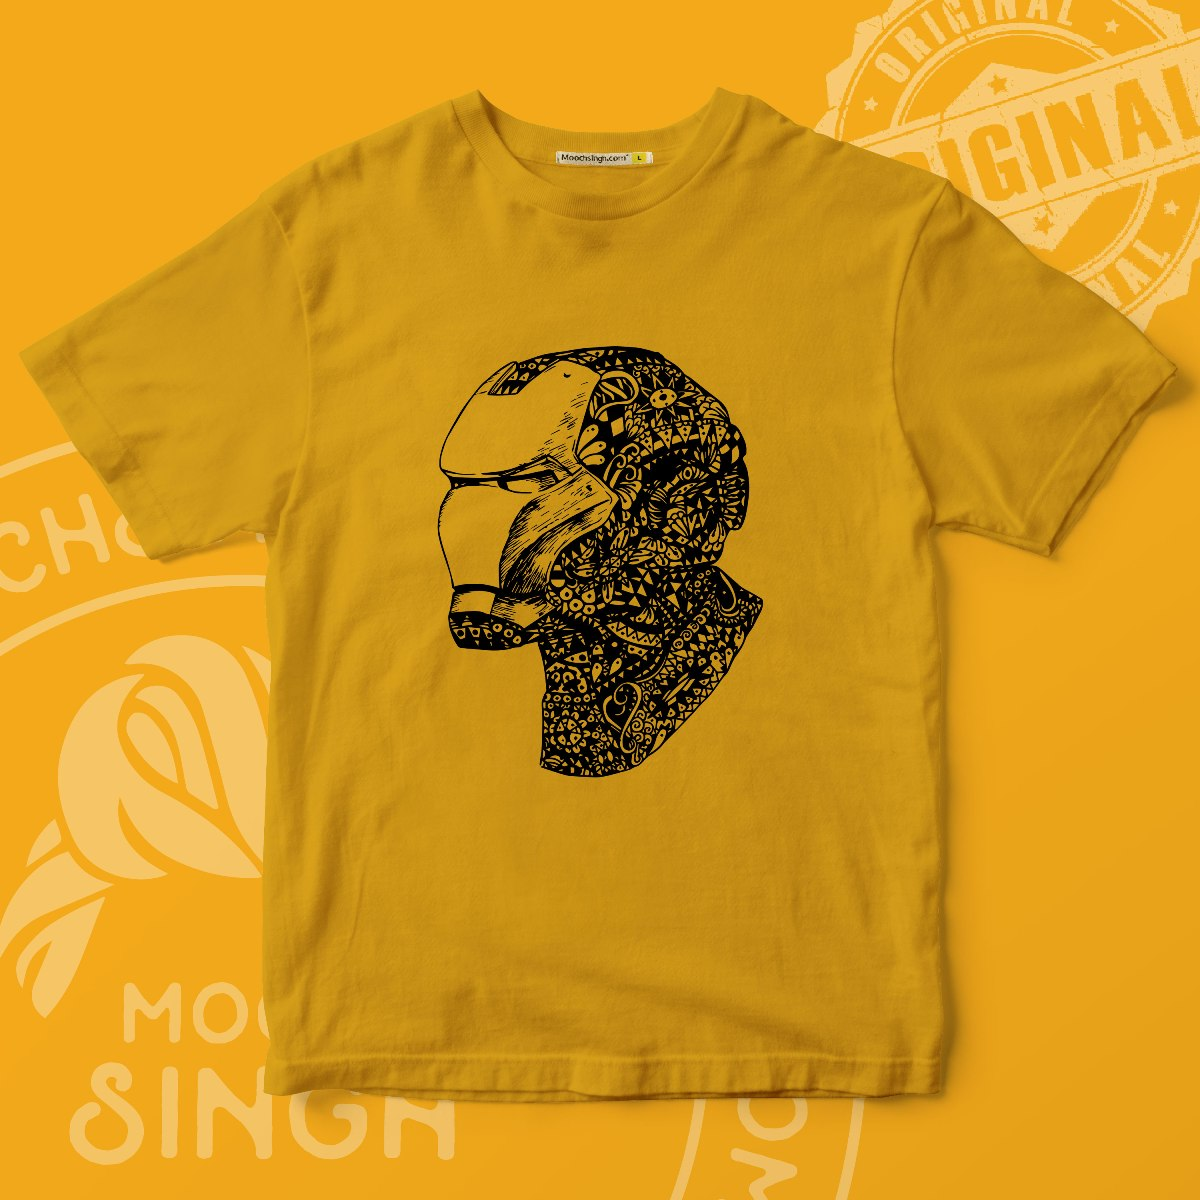 MUSTARD MARVEL'S SUPERHERO IRON MAN PRINTED ROUND NECK T-SHIRT BY HOUSE OF MOOCHSINGH.COM